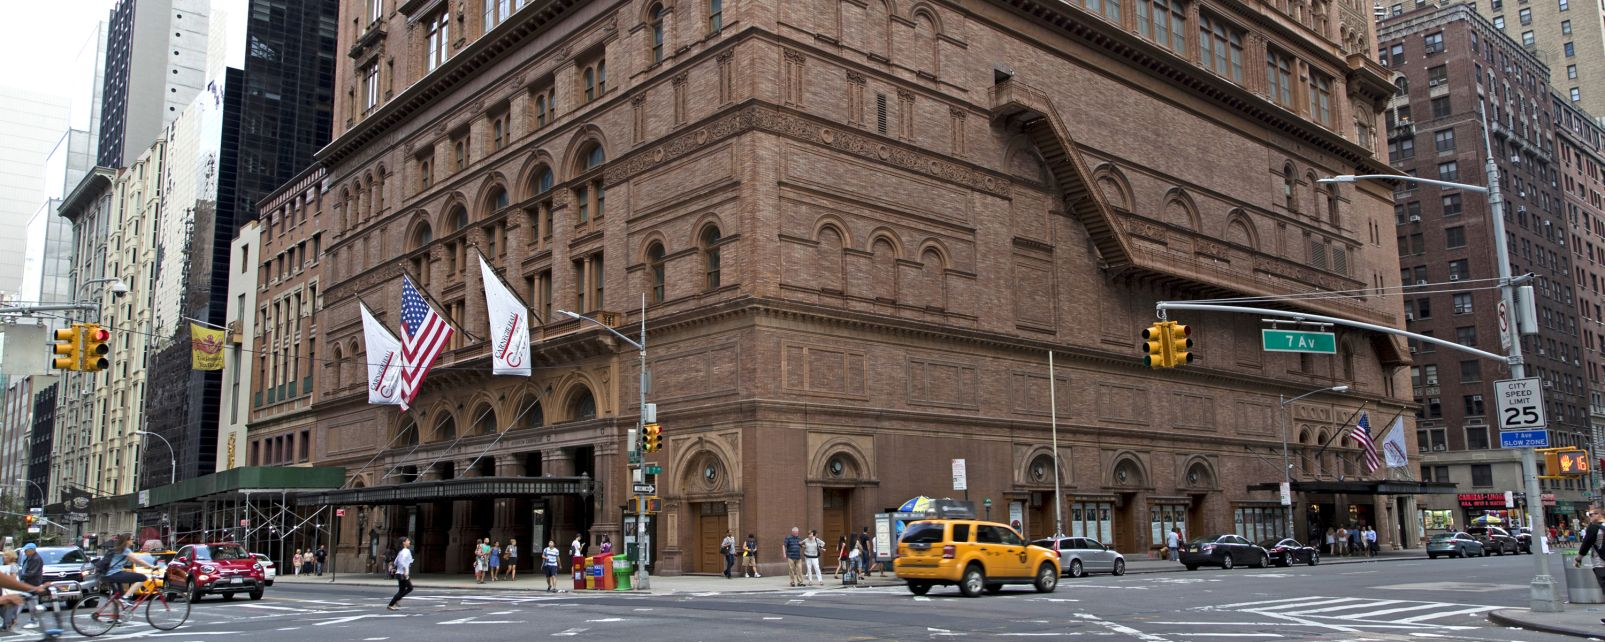 Carnegie Hall, Arts and culture, New York, Northeastern USA